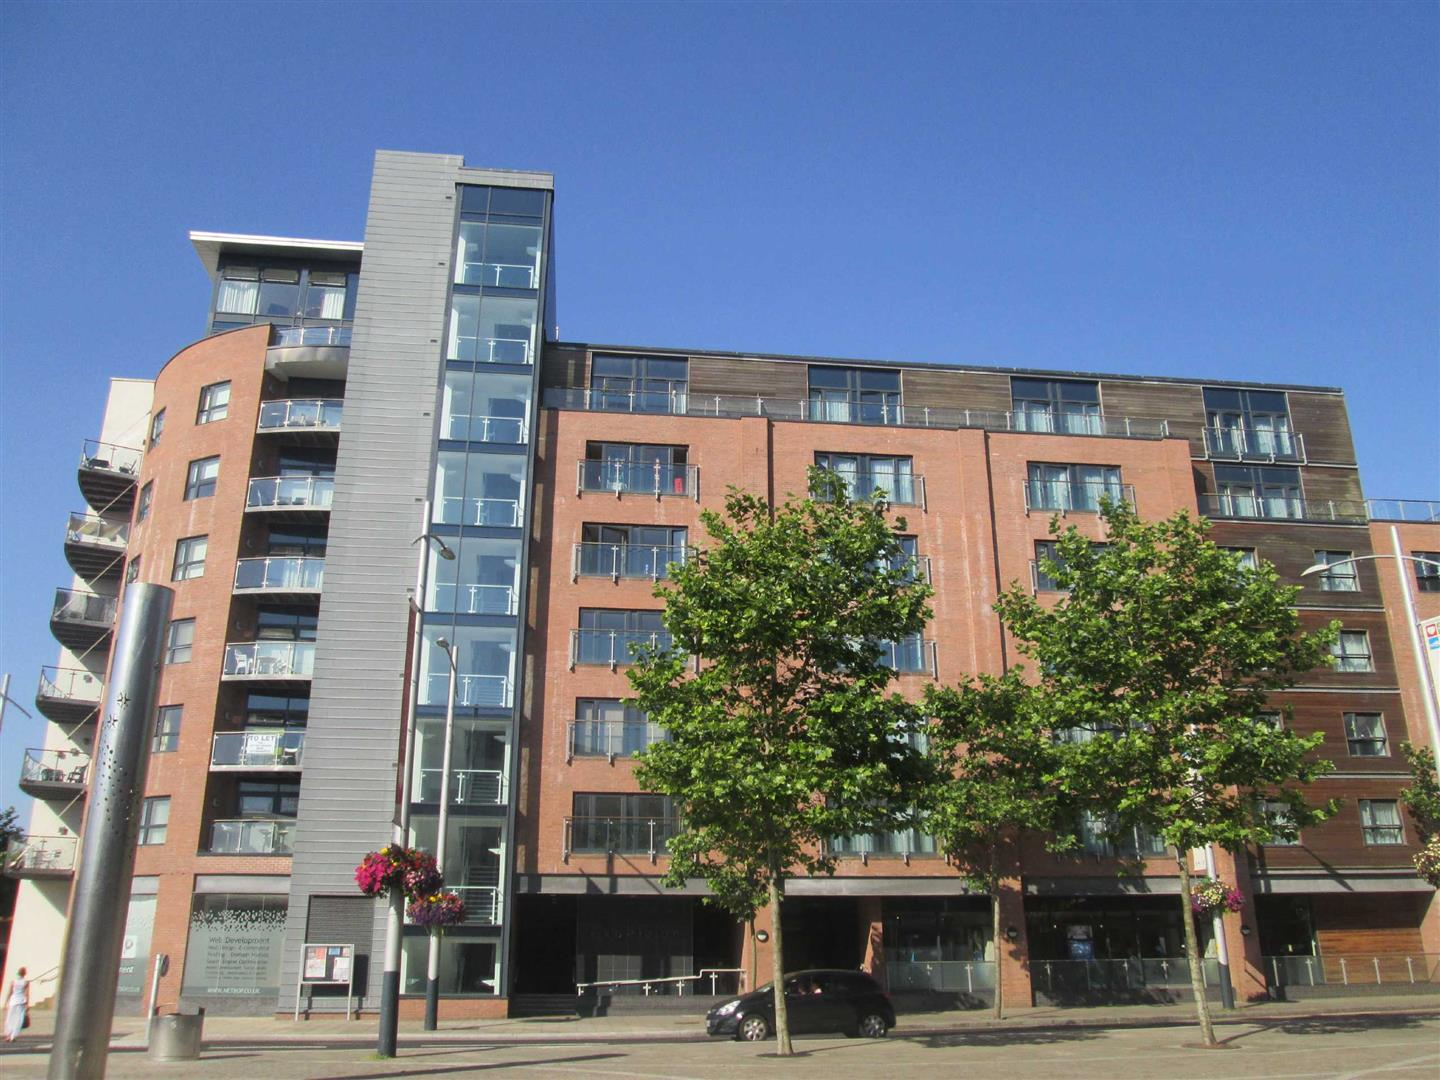 Excelsior Apartments, Swansea